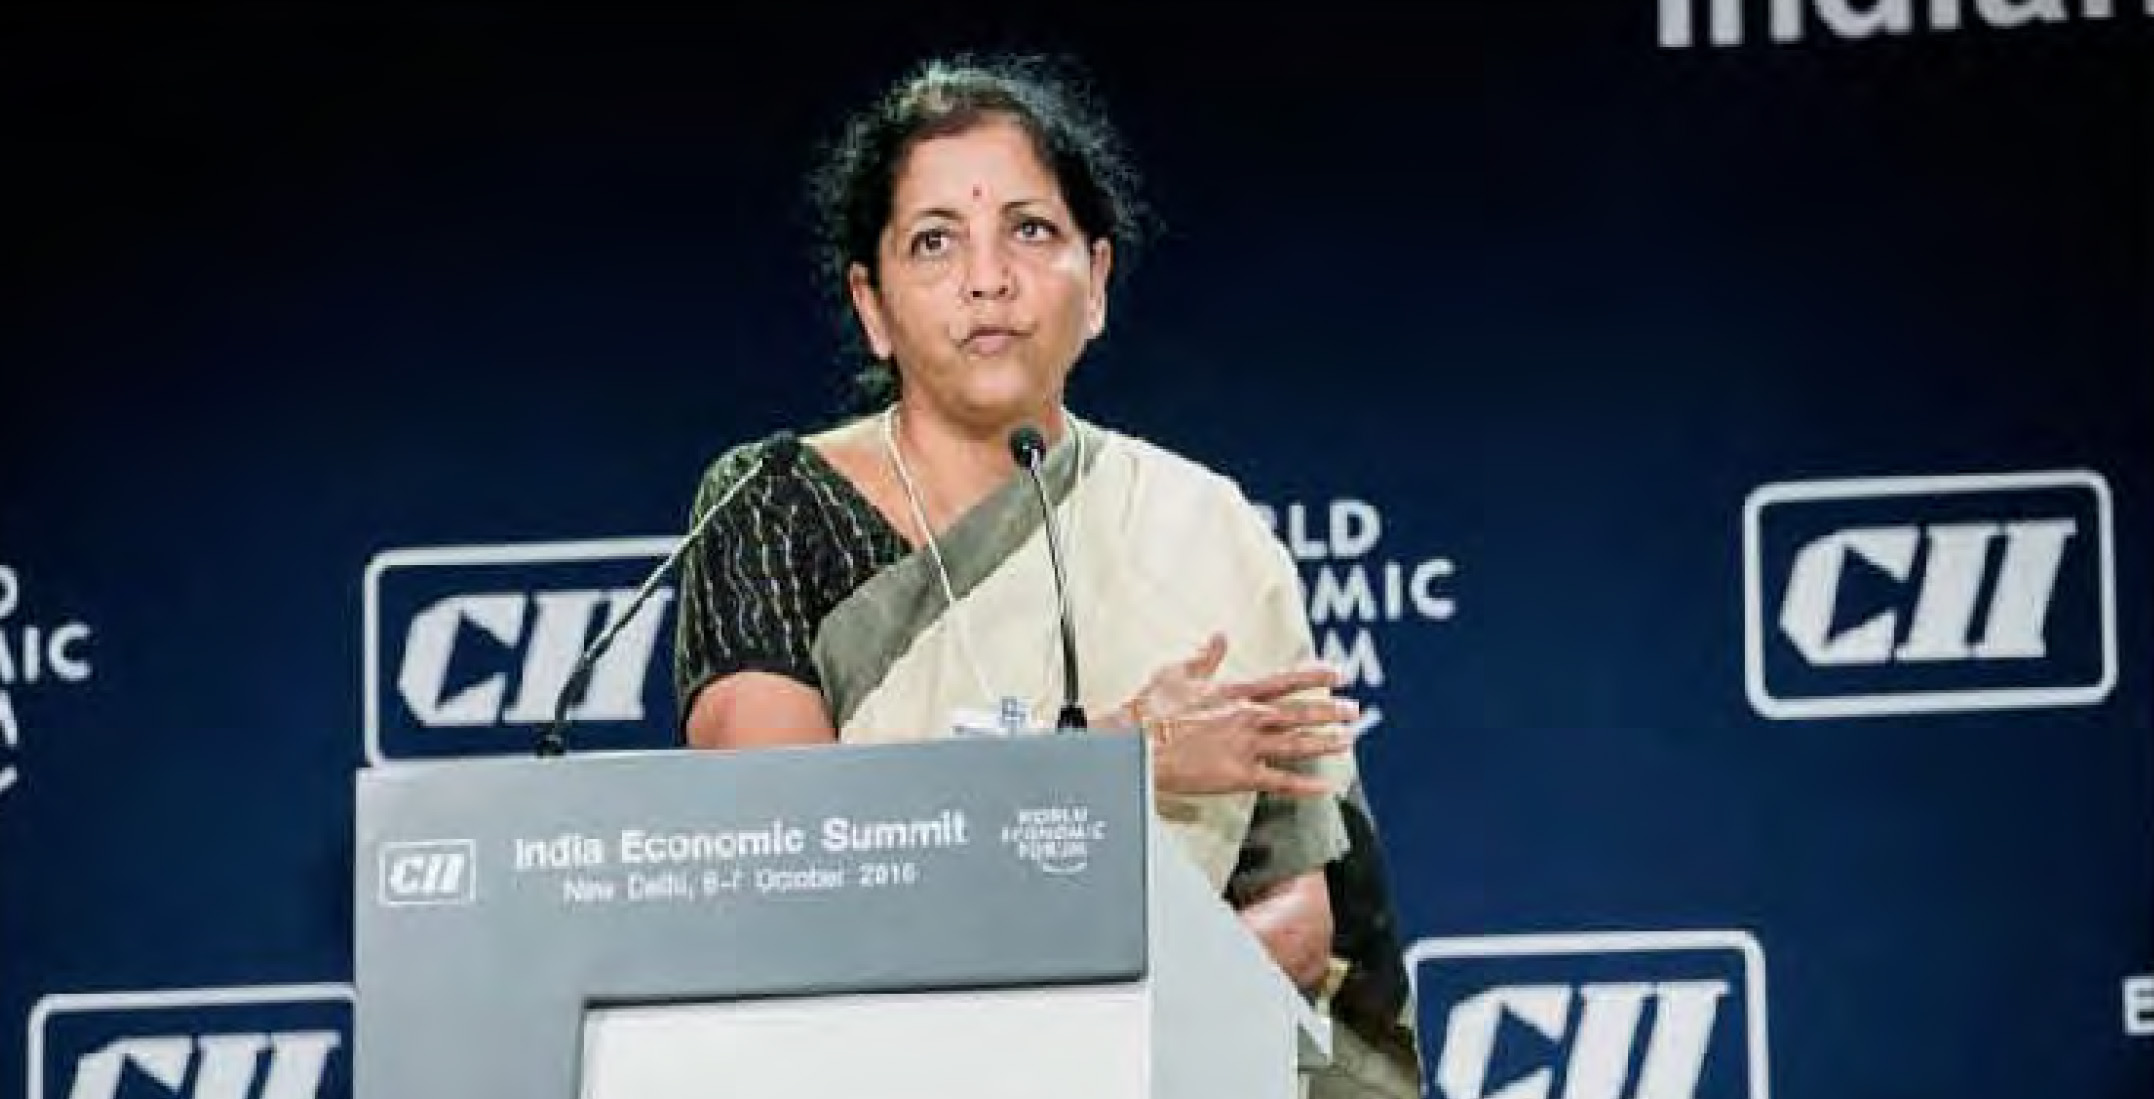 INDIA'S COMMERCE AND INDUSTRY MINISTER MS. NIRMAlA SITHARAMAN